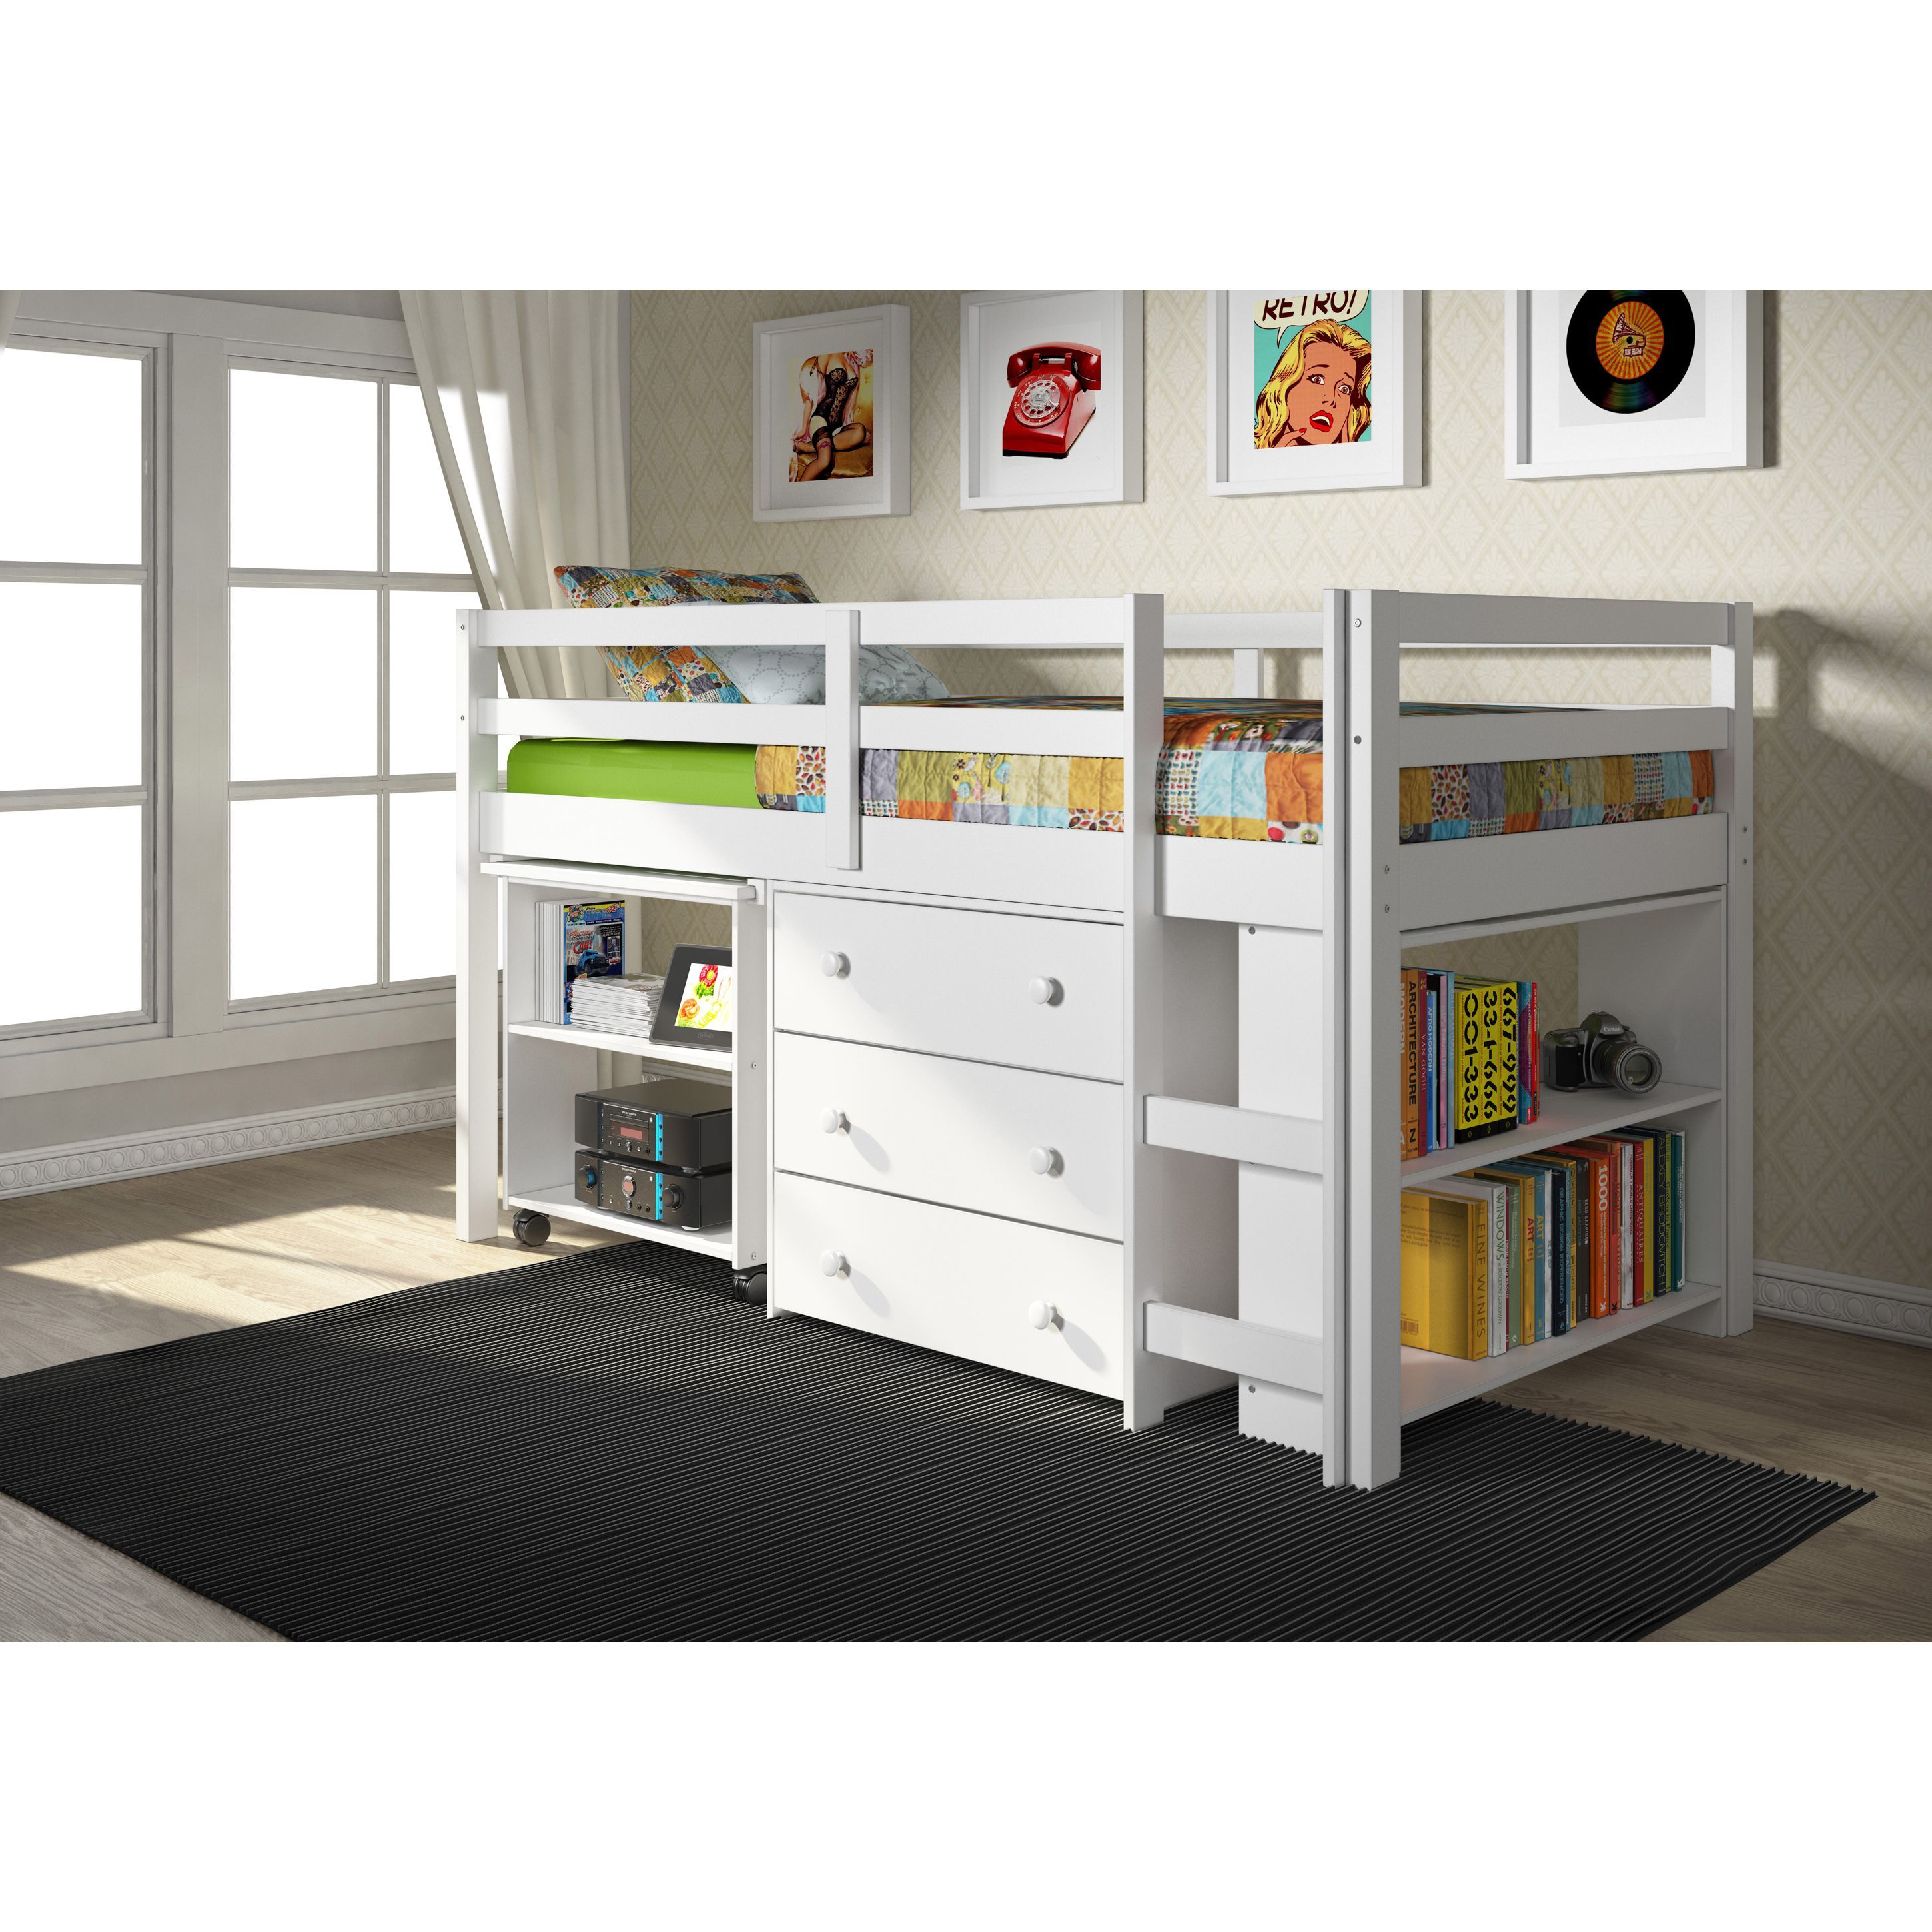 Doppel Hochbett Ikea Donco Kids Low Study Loft Desk Twin Bed With Chest And